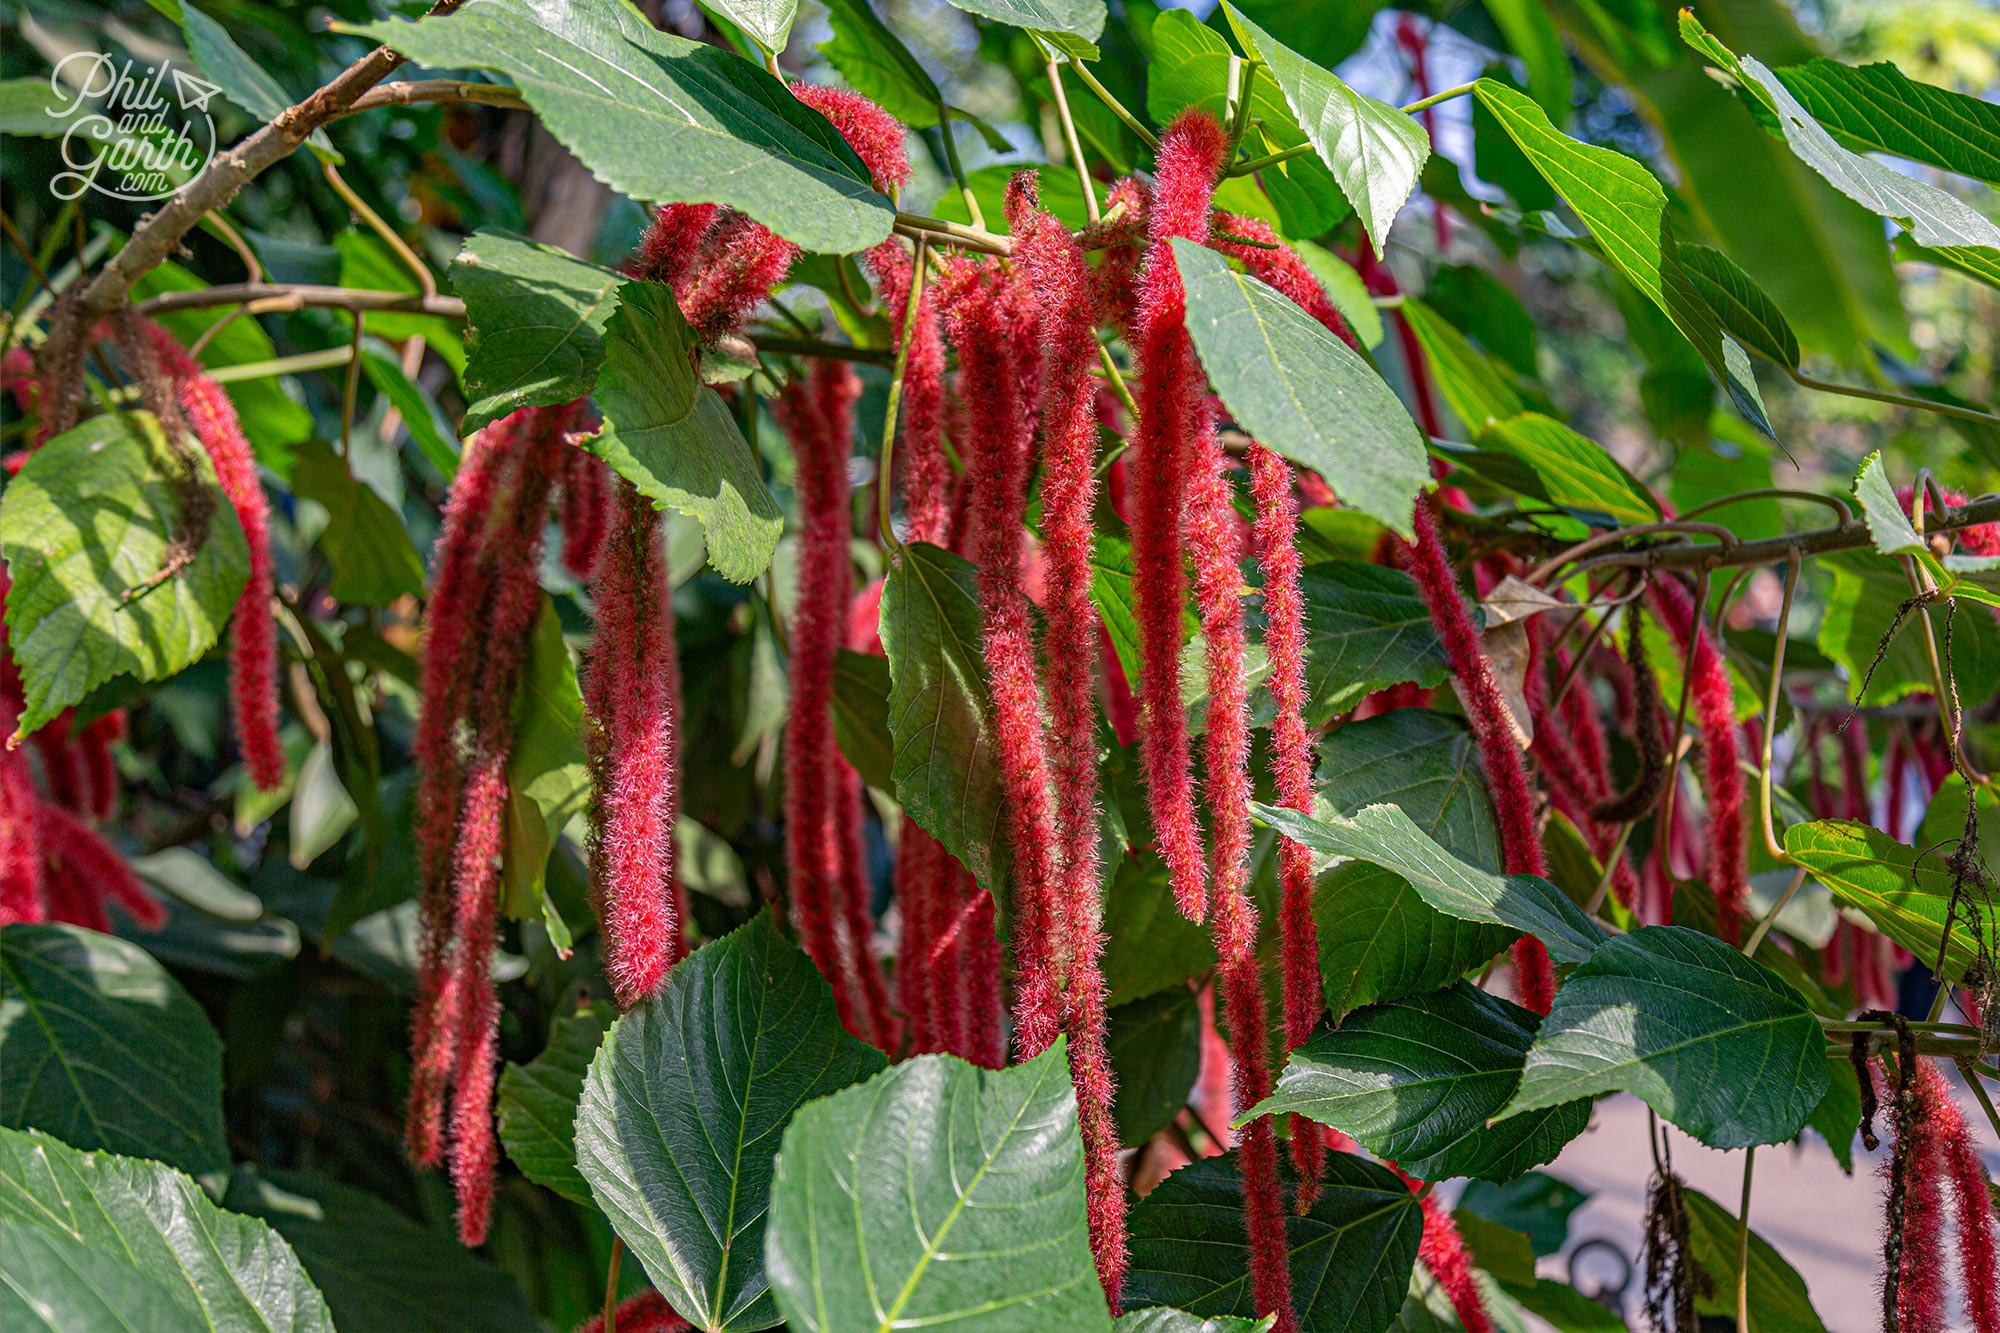 These are called Love Lies Bleeding Amaranthus caudatus from Central and South America